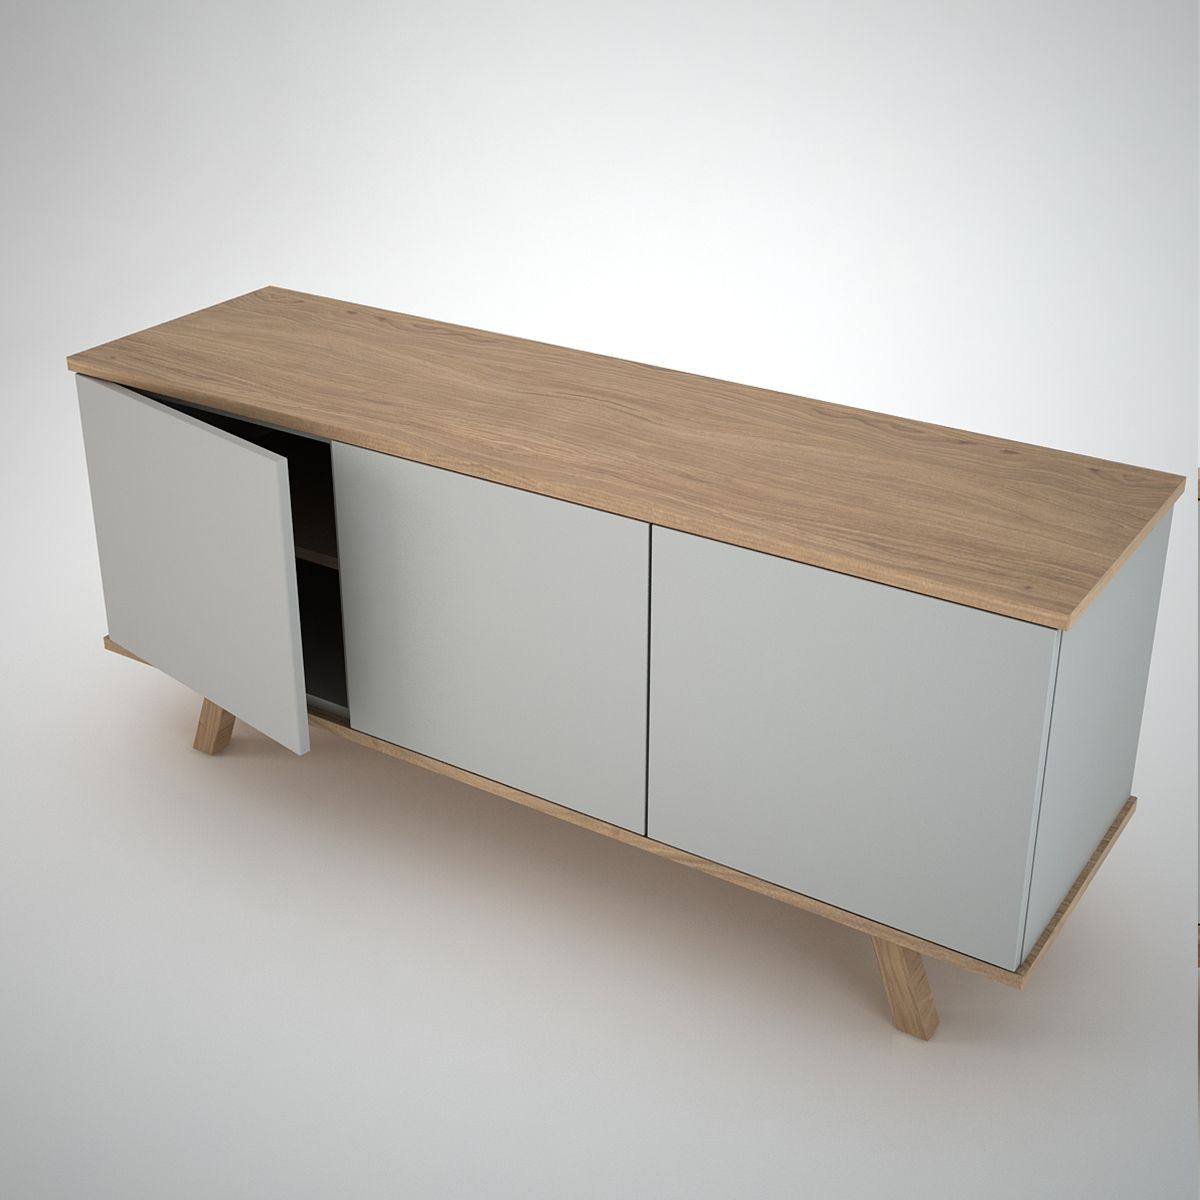 Join Furniture Ottawa Contemporary Sideboard Decora O Pinterest Scandinavian And House